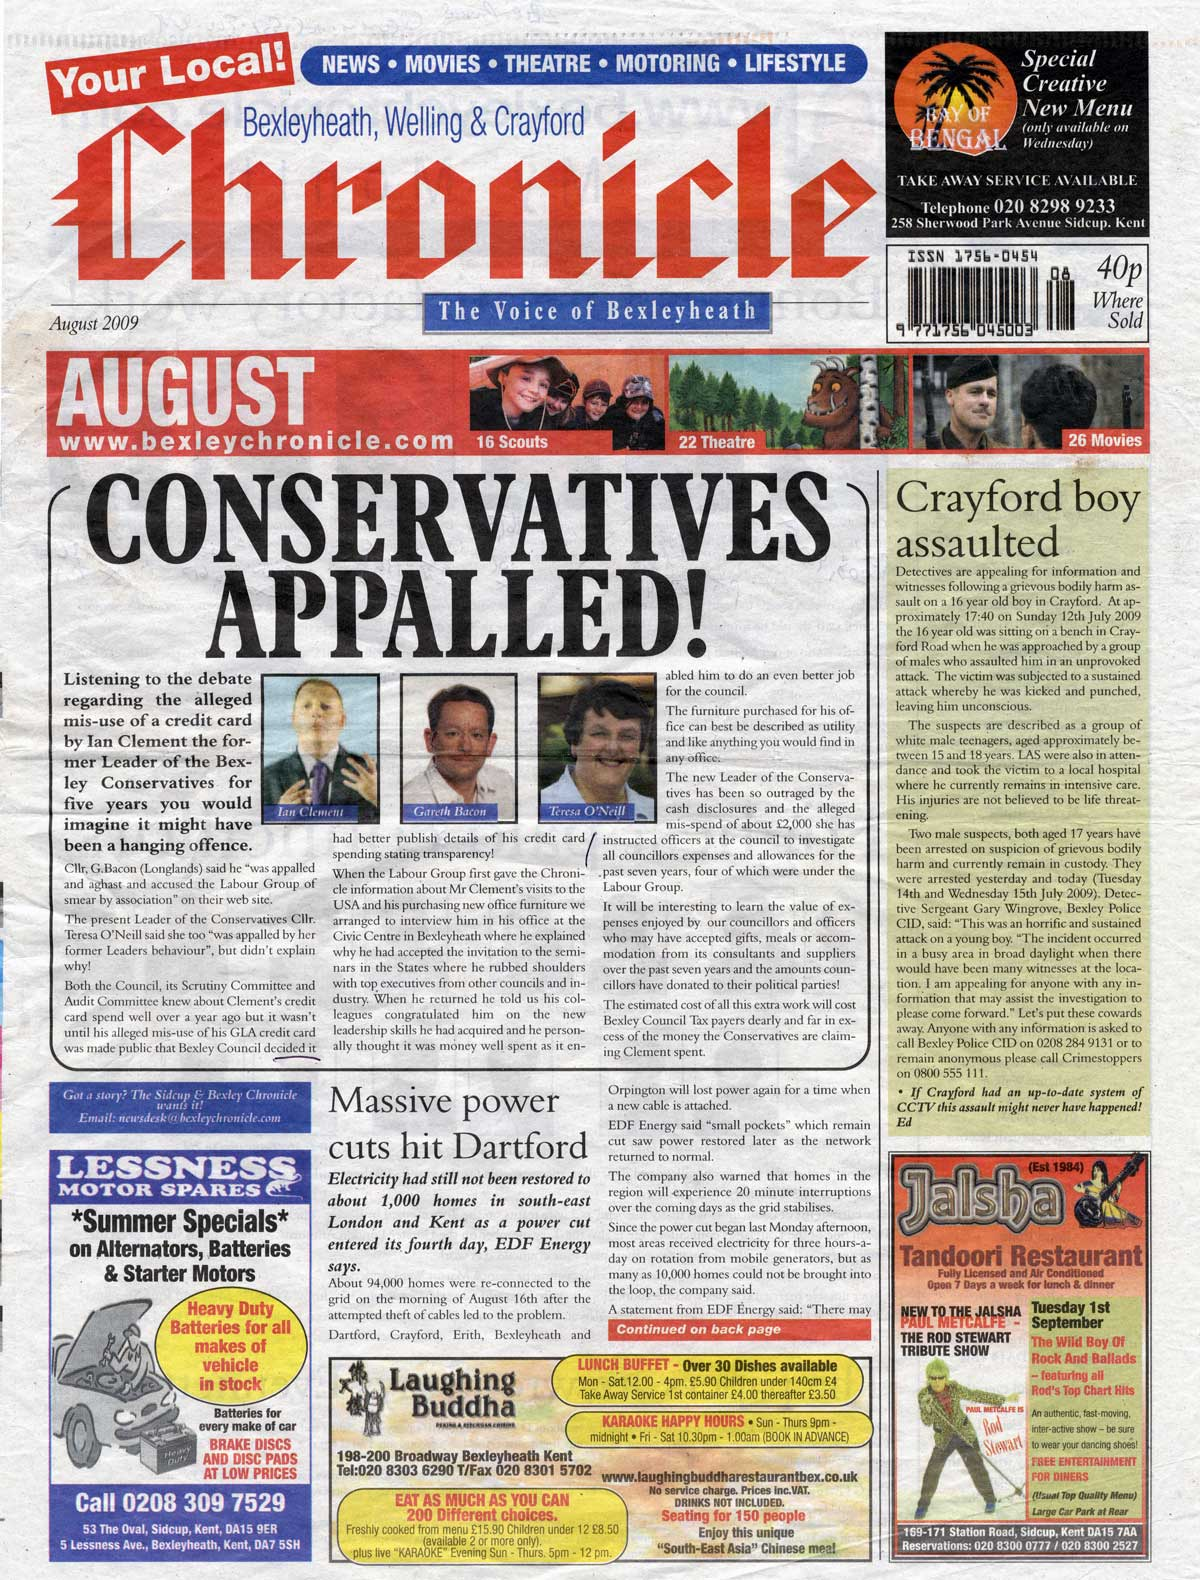 Bexleyheath Chronicle, August 2009, page 1